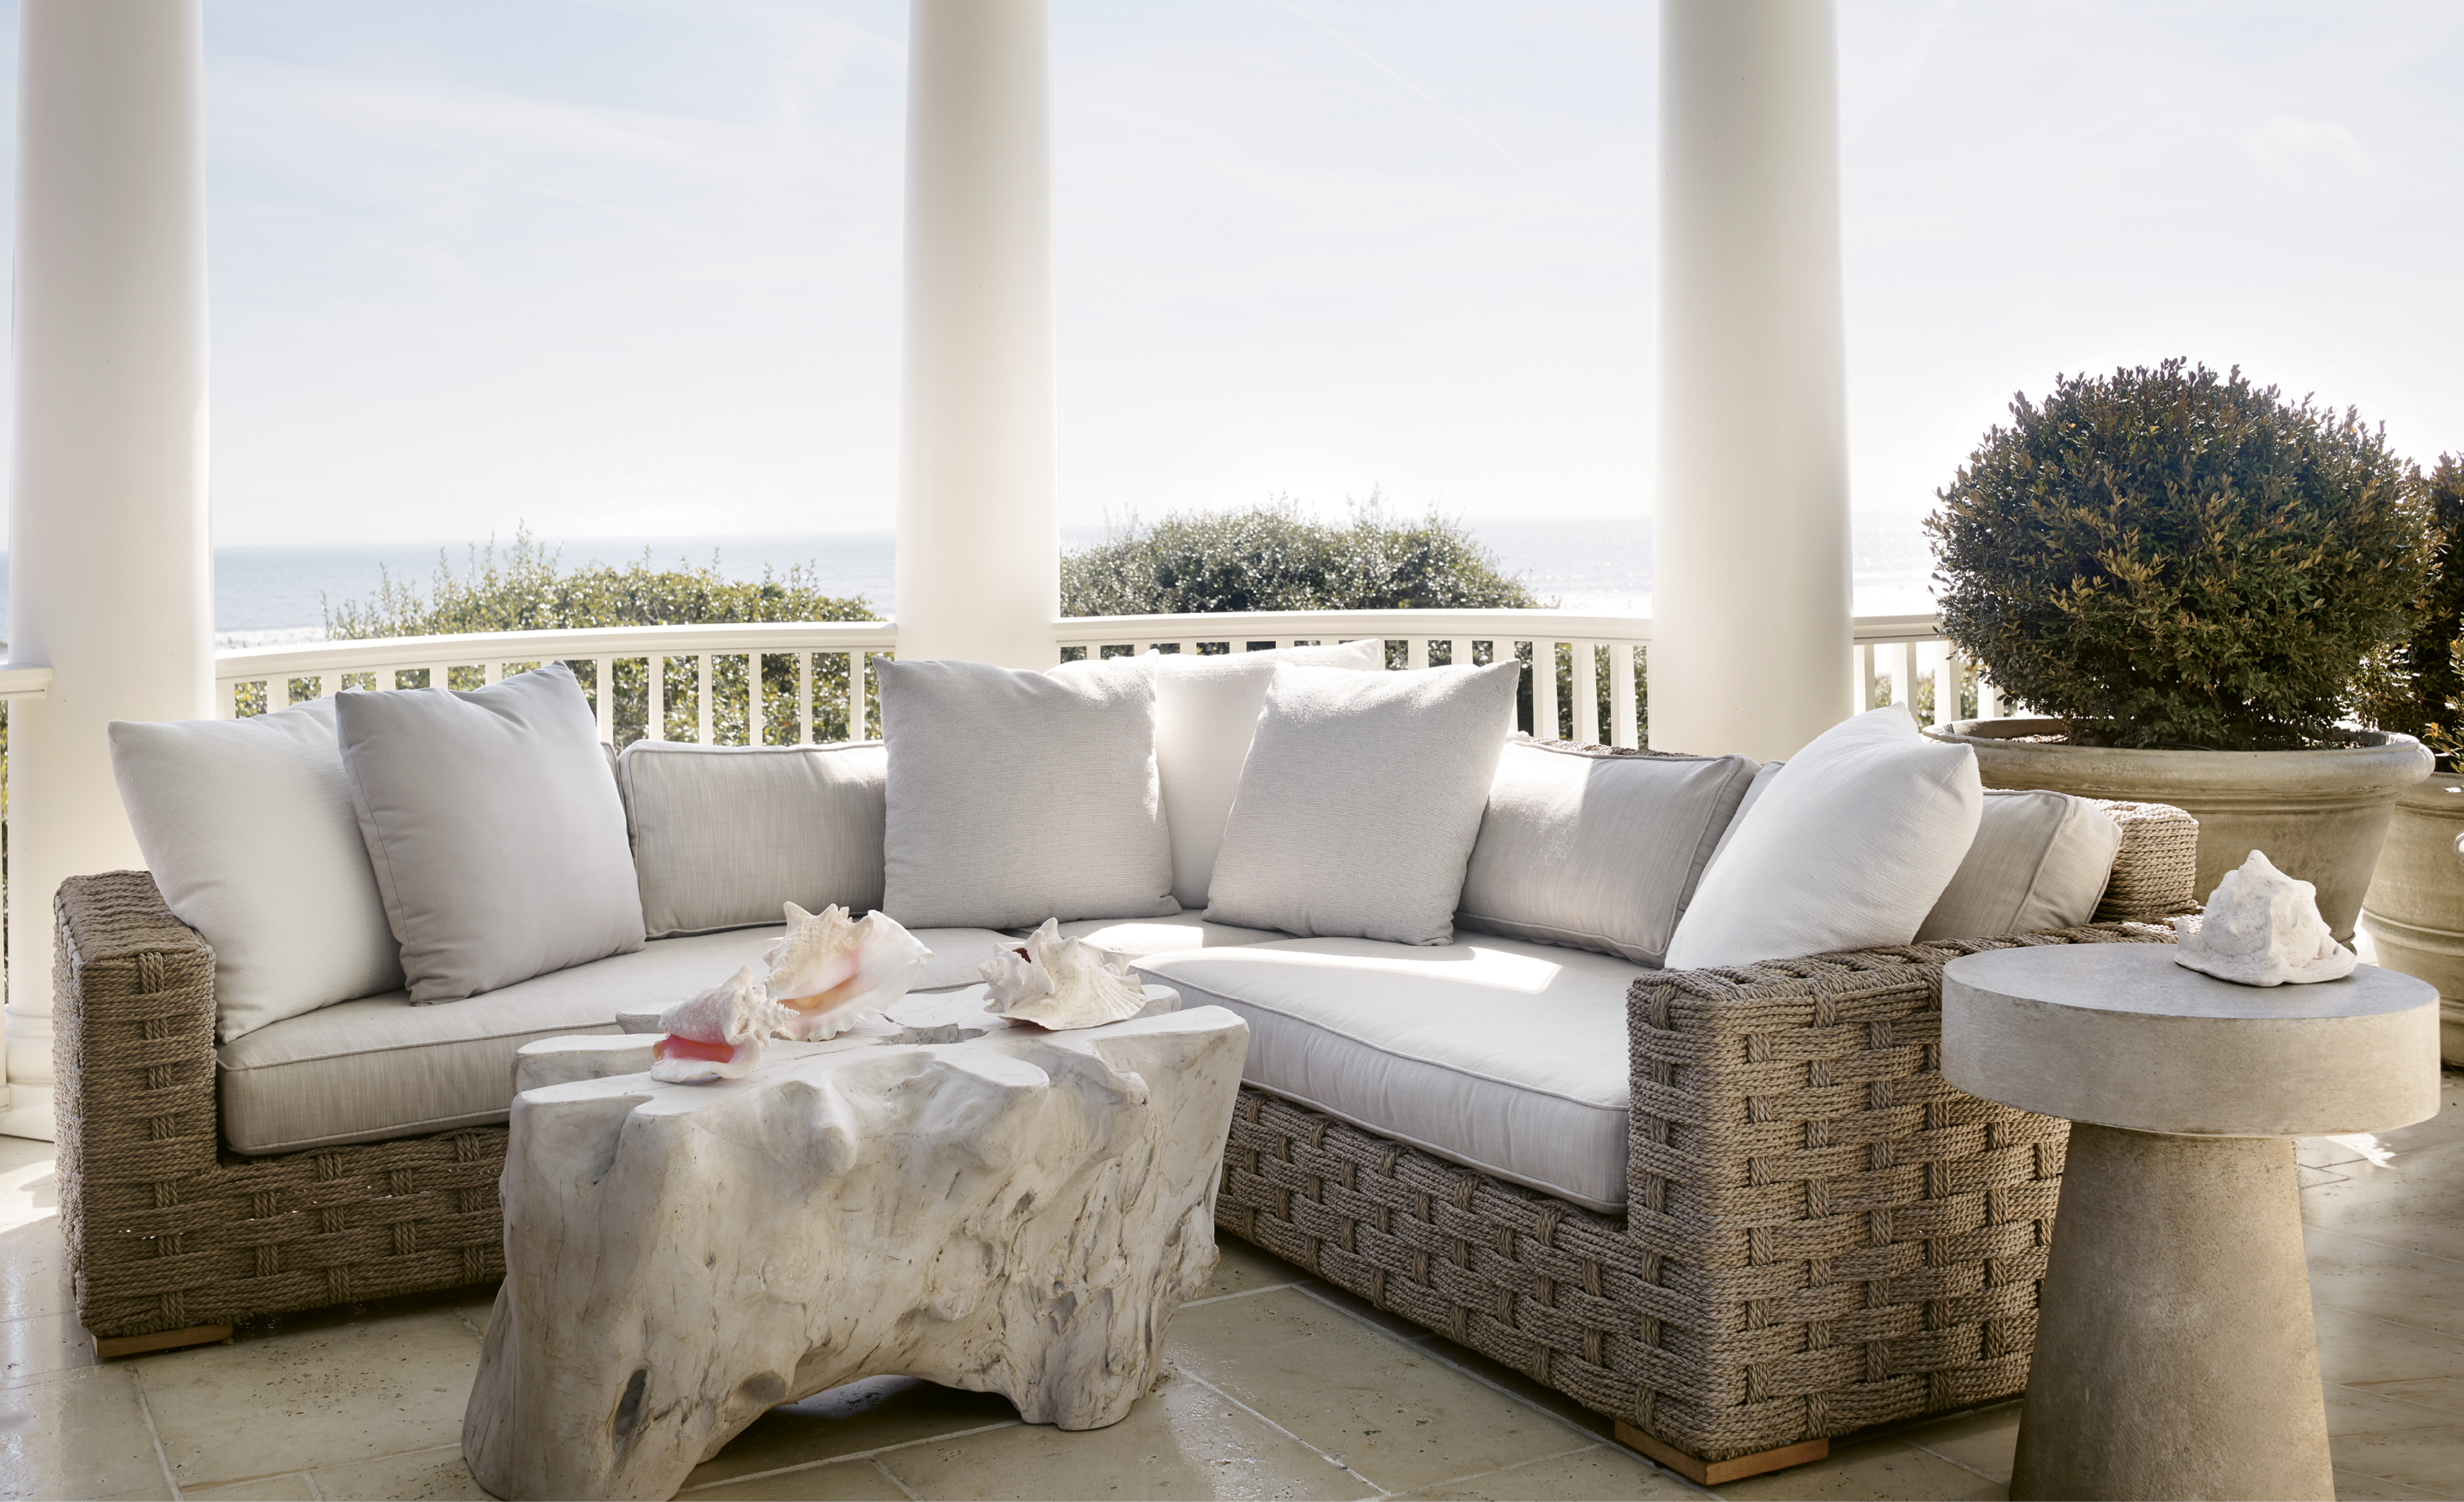 """This columned porch provides both privacy and panoramic views. """"The curved porches and their roofs shield the house from the neighbors, so you feel like you're in the only house on the beach,"""" says architect Chris Rose. The outdoor furnishings, including a Restoration Hardware rope sectional, were selected to echo the classicism and Cape Cod influence of the architecture."""